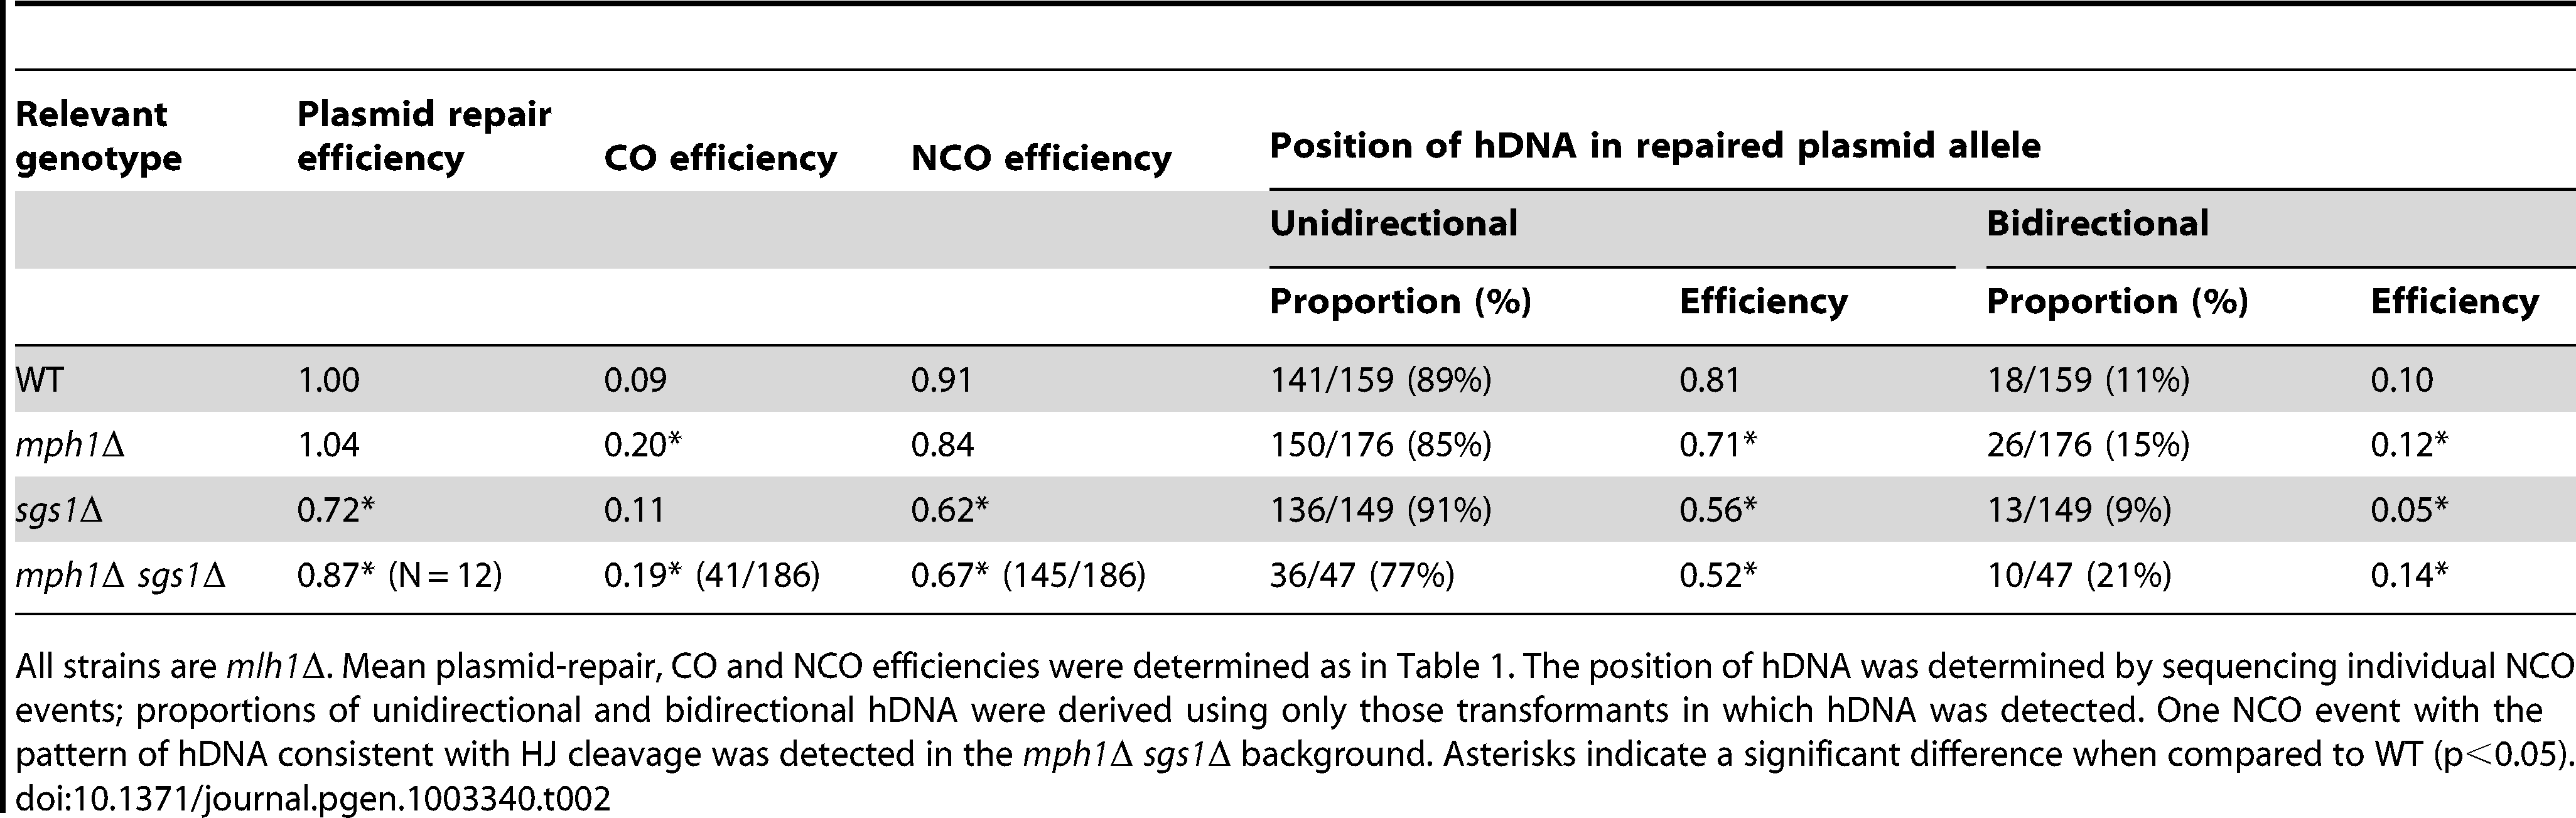 Efficiency of NCO events with unidirectional versus bidirectional hDNA in the repaired plasmid allele.